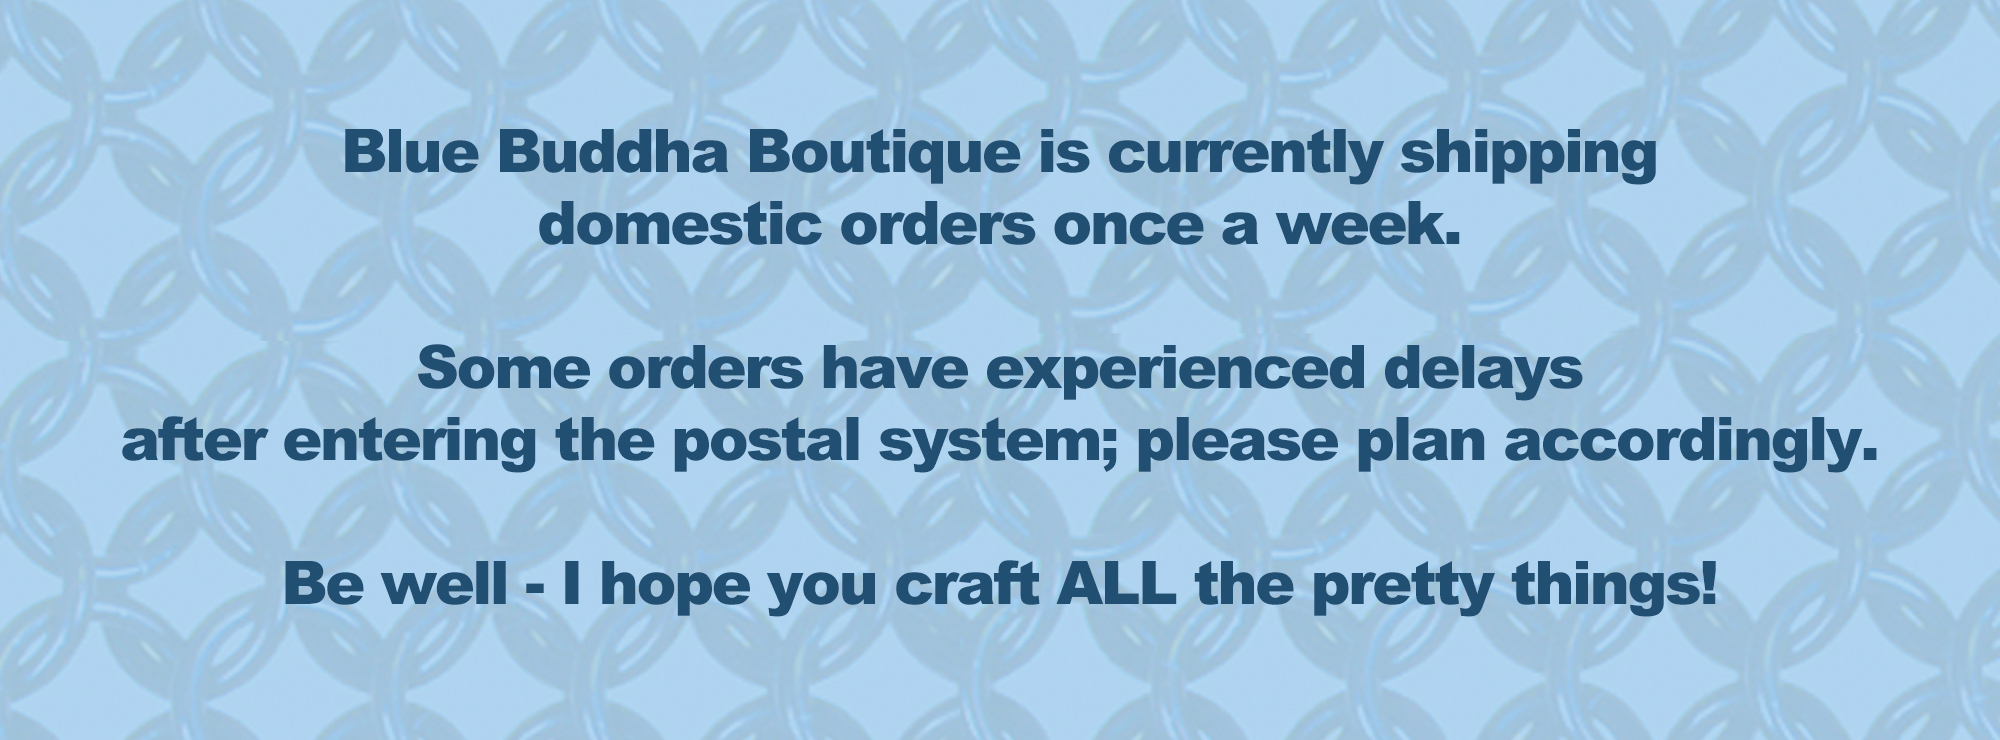 text reads that Blue Buddha is shipping domestic orders once a week and there may be delays with the postal system